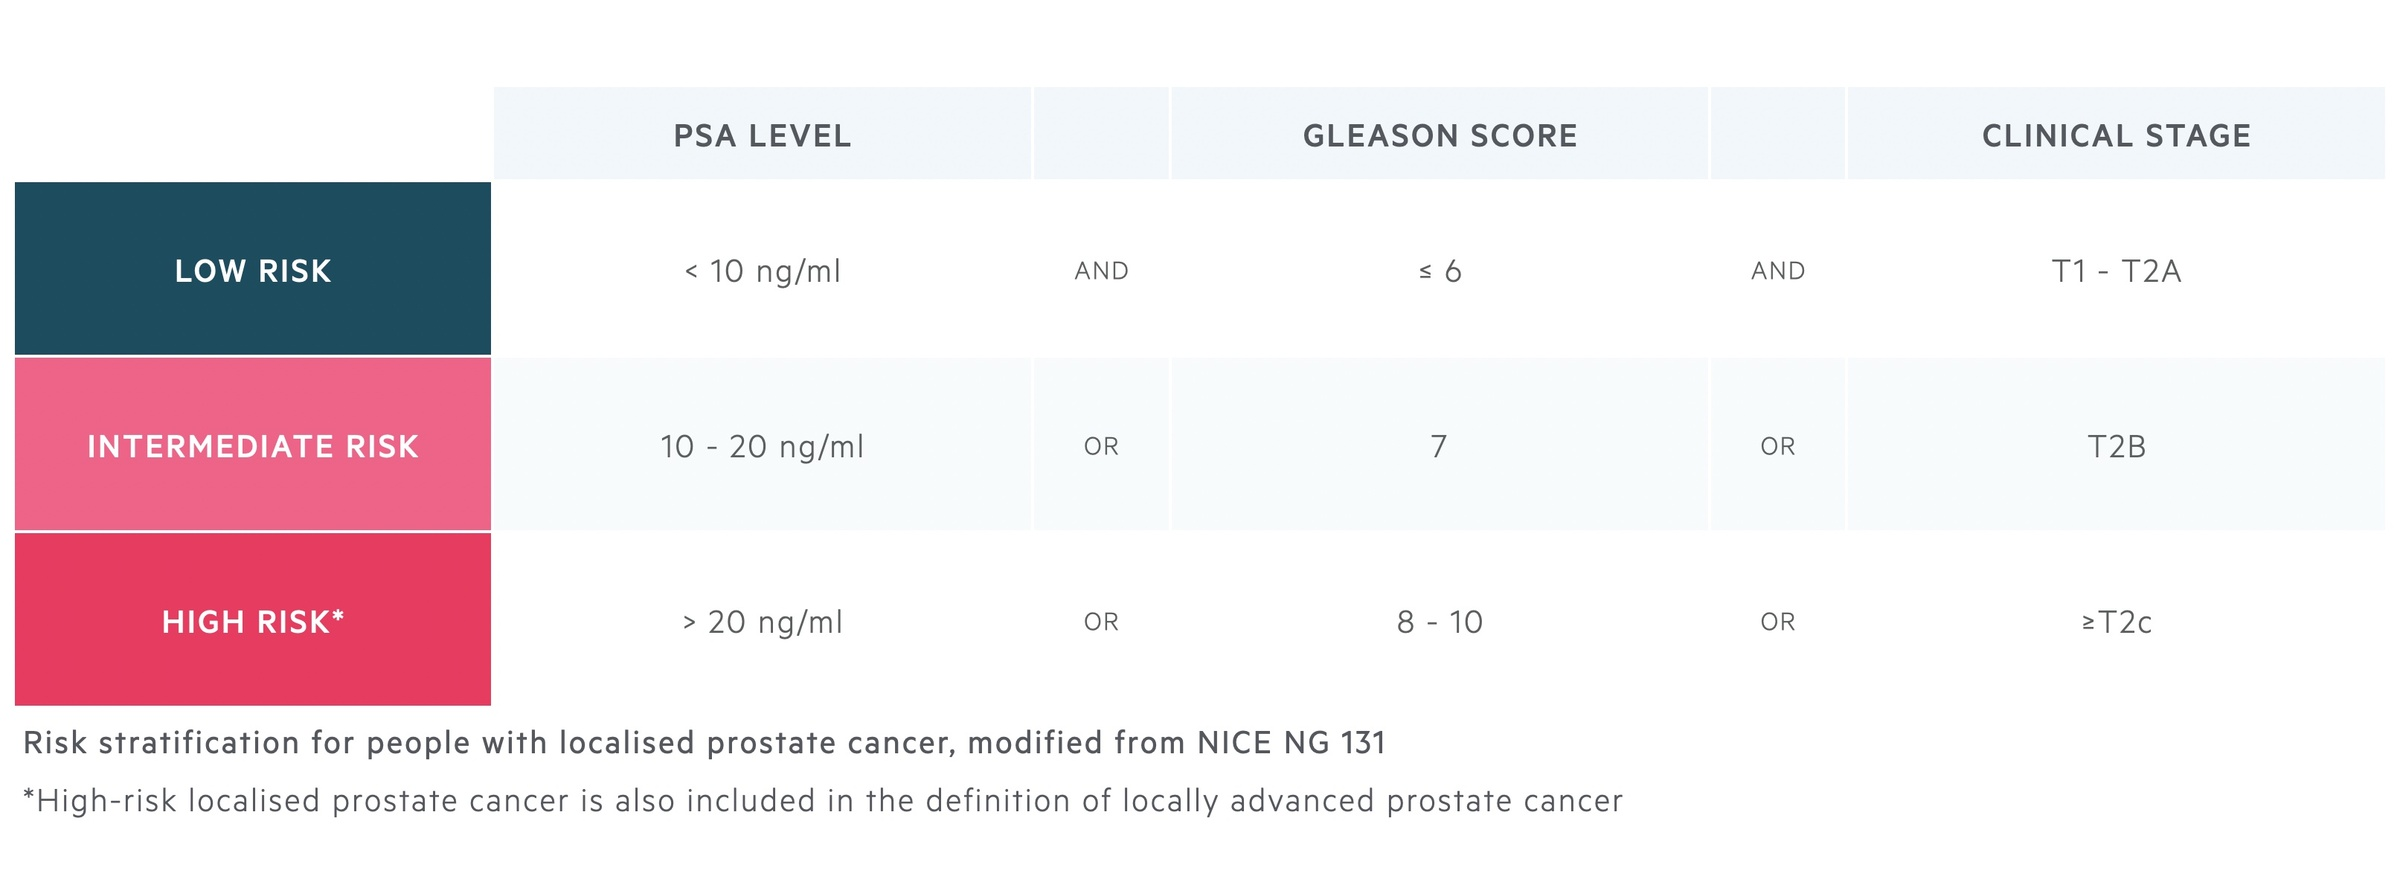 Risk stratification for people with localised prostate cancer, modified from NICE NG 131.